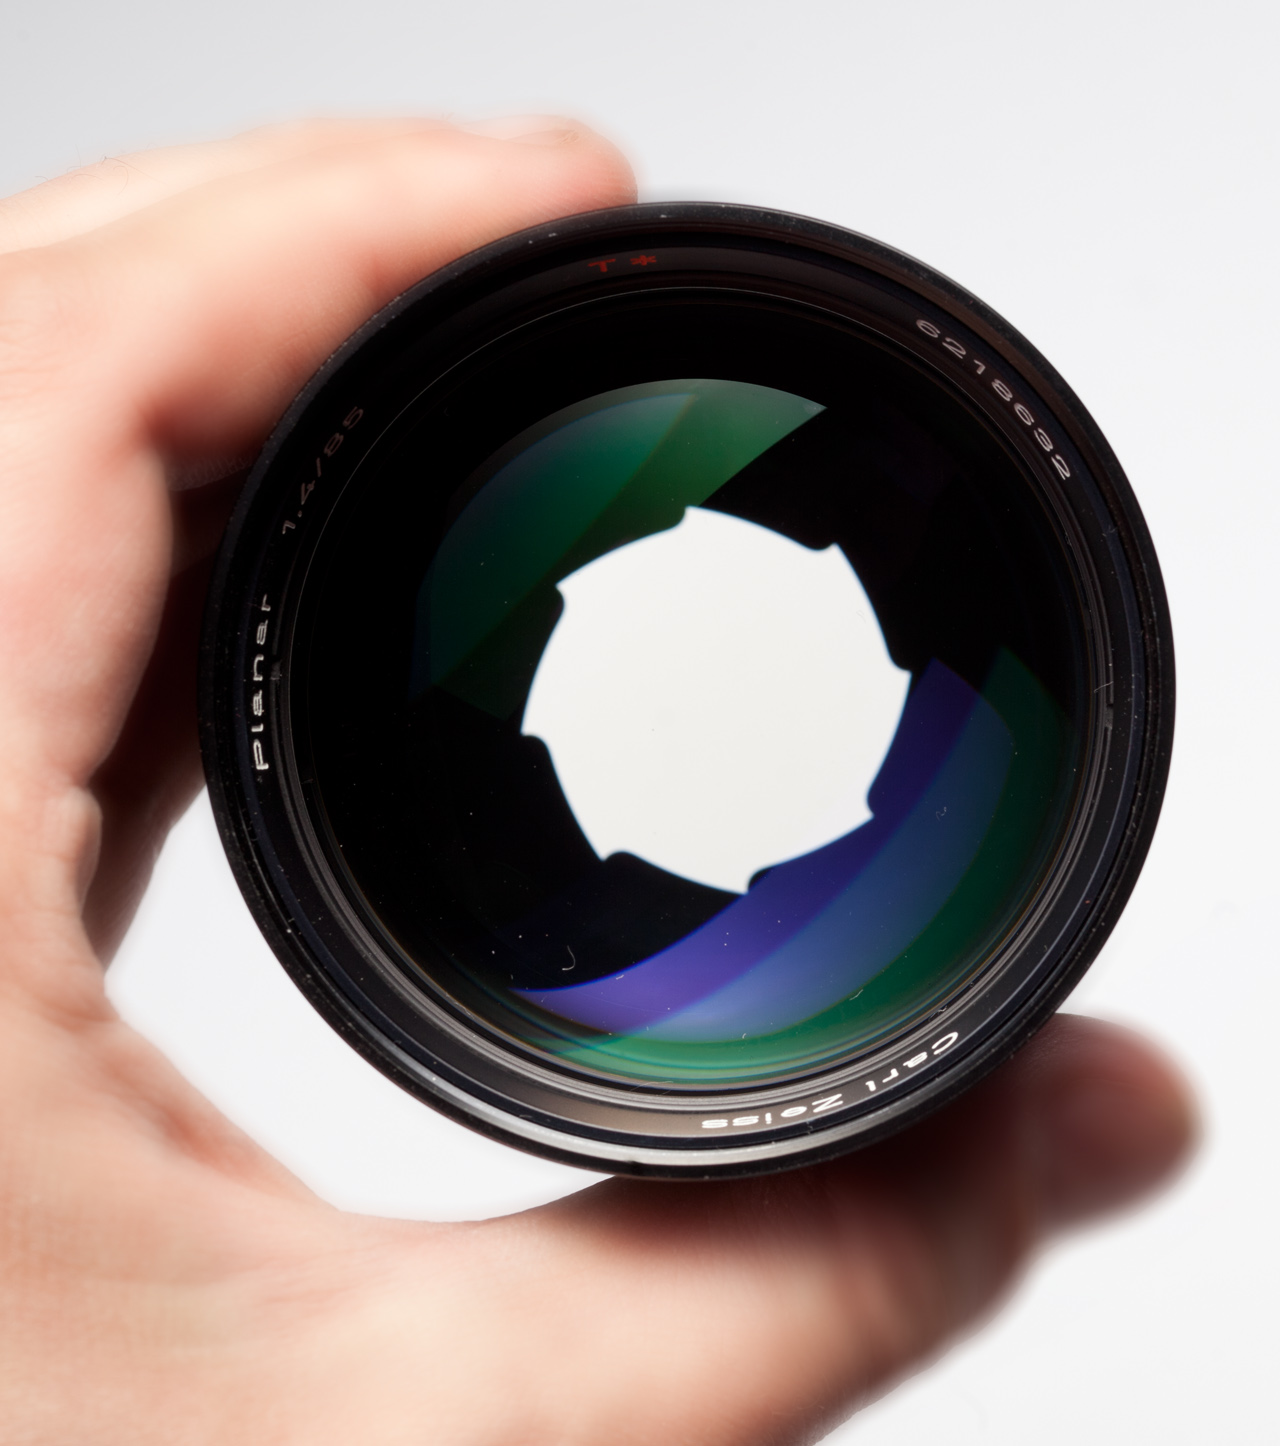 German Carl Zeiss Planar 85/1.4 with aperture closed to F2